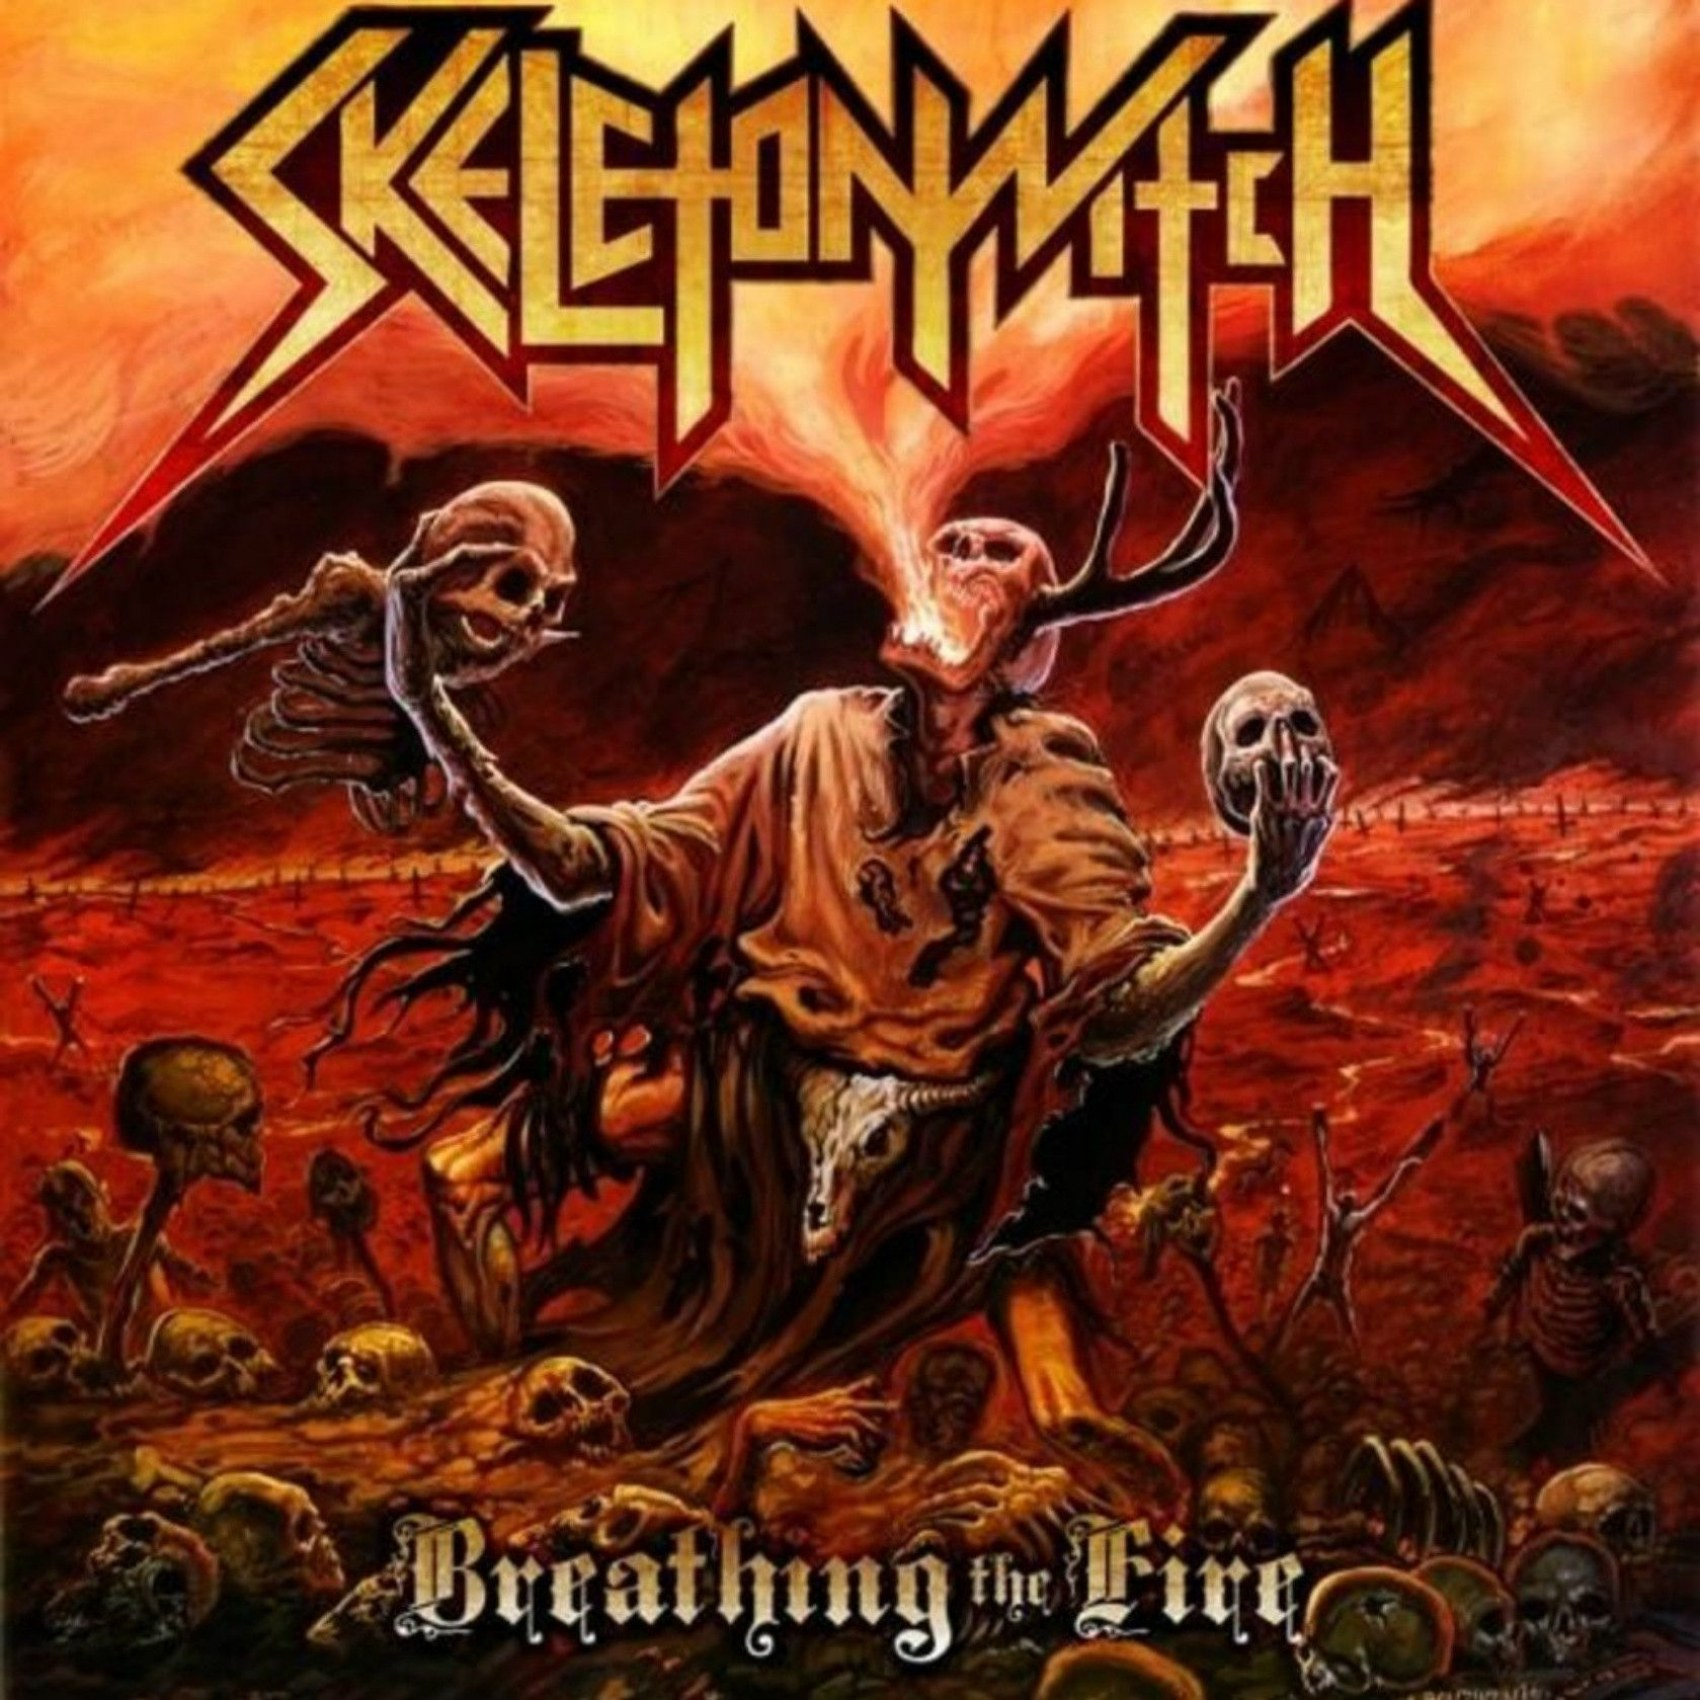 Review for Skeletonwitch - Breathing the Fire